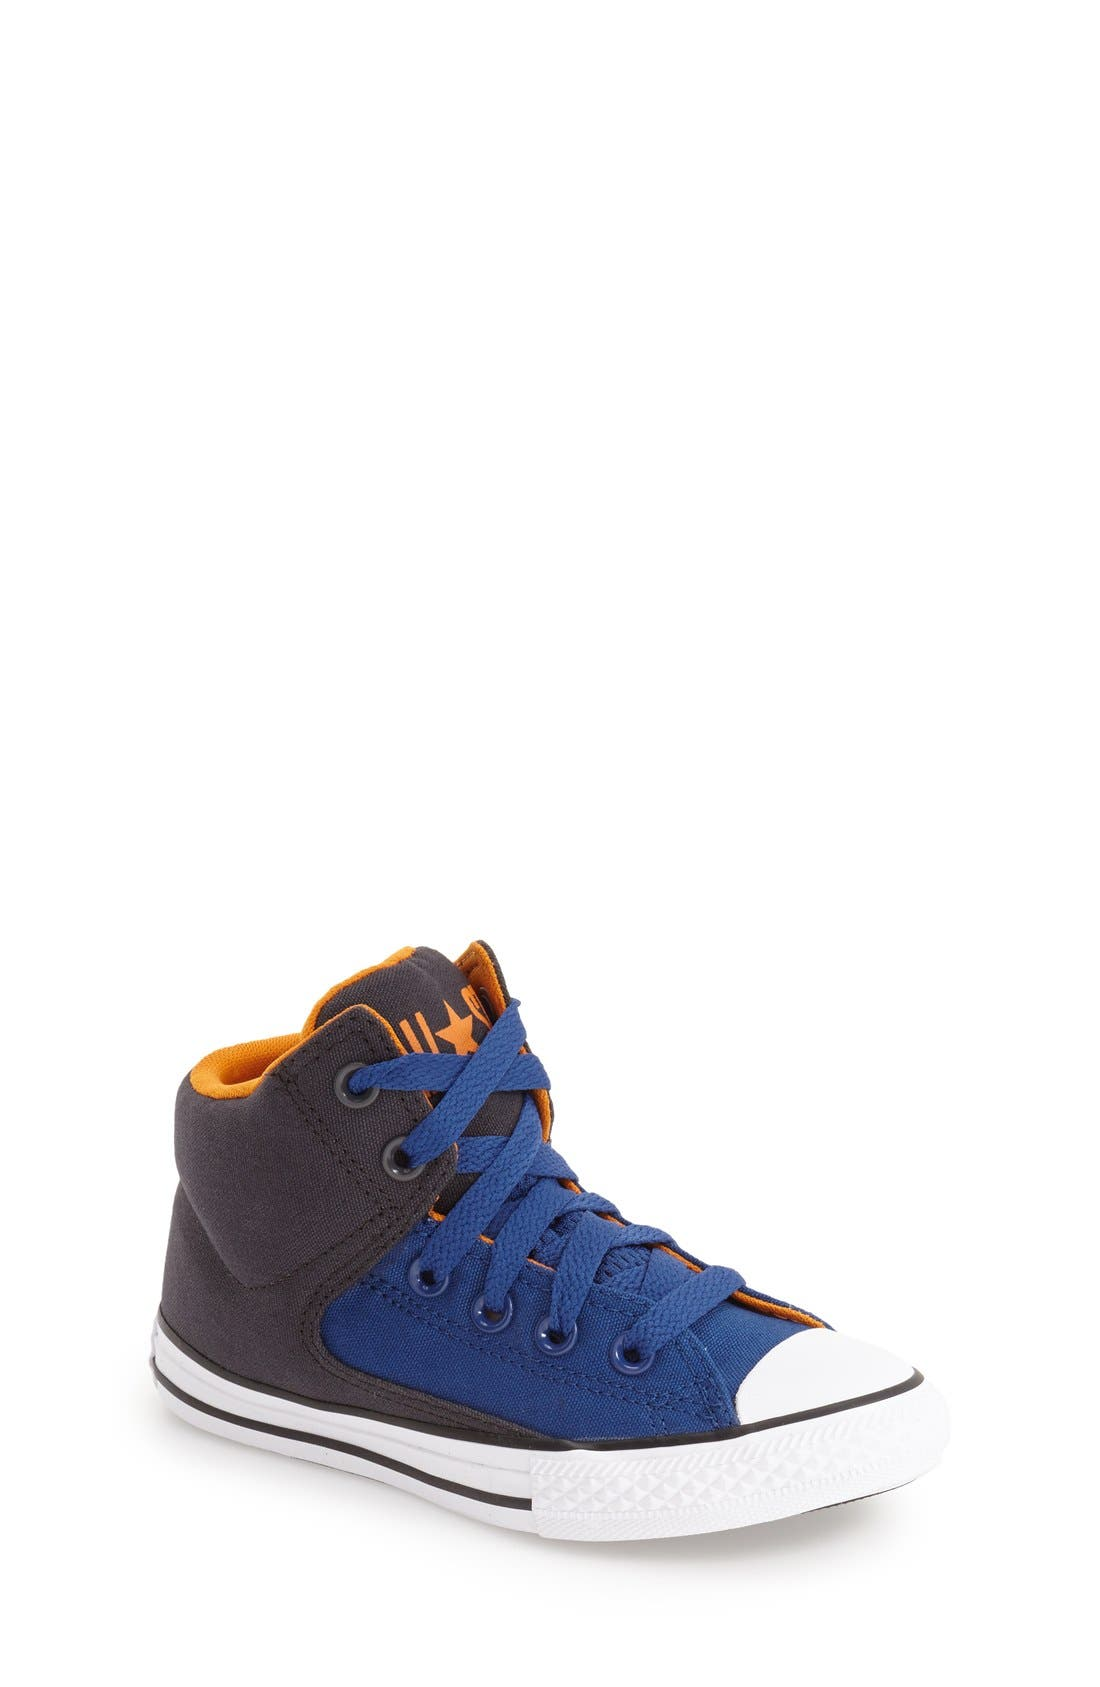 Chuck Taylor<sup>®</sup> All Star<sup>®</sup> 'High Street' Mid Rise Sneaker,                             Main thumbnail 1, color,                             Blue